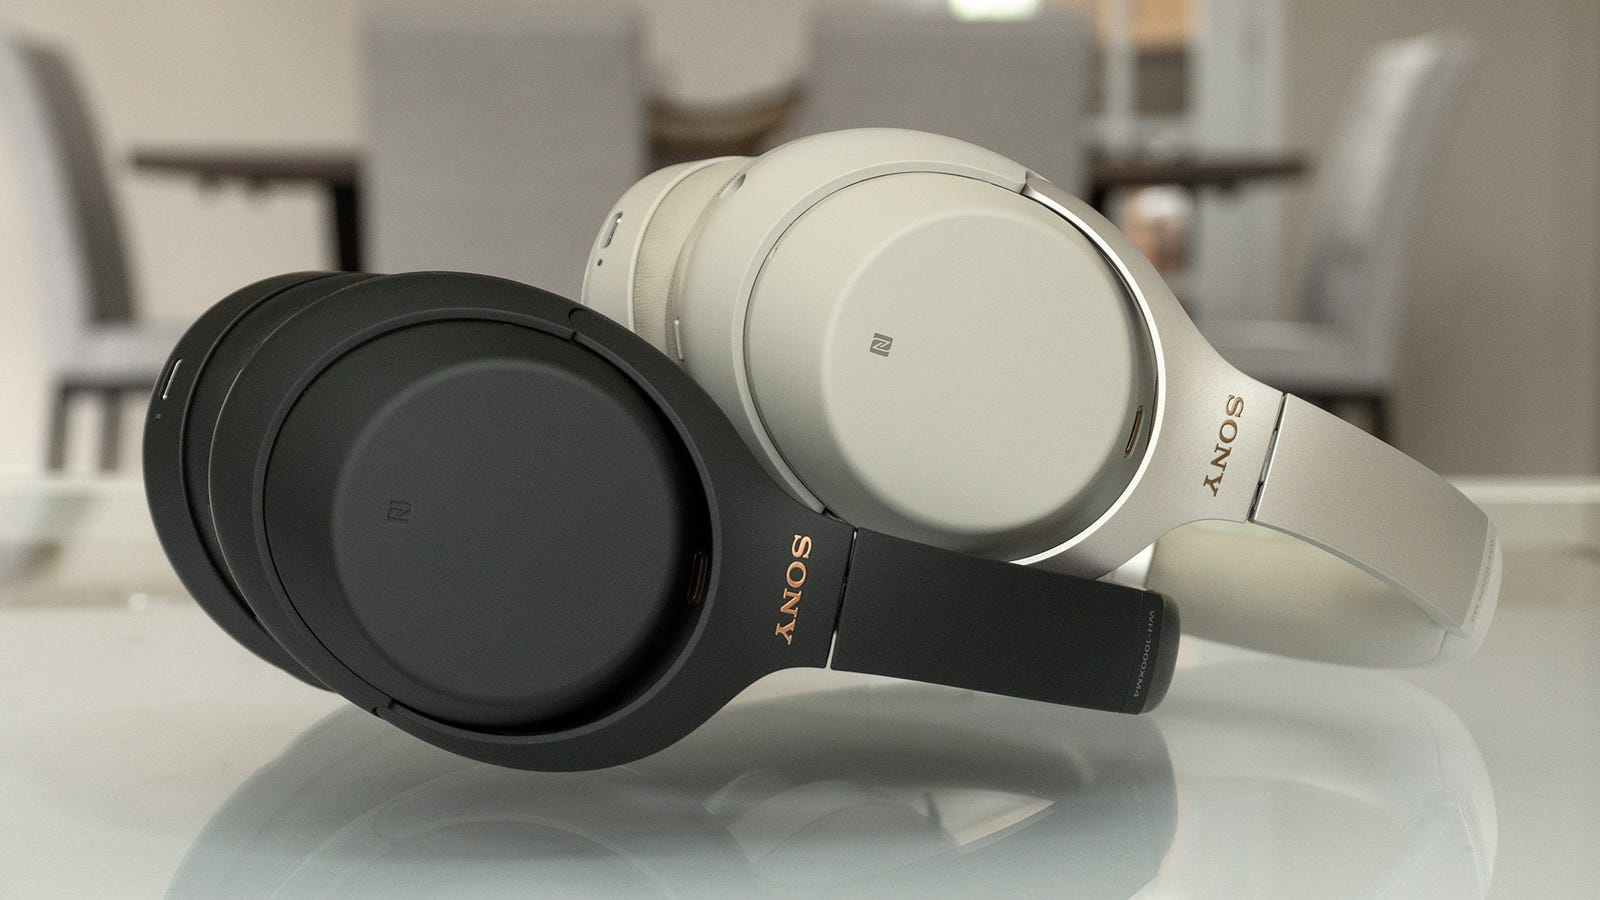 The Sony WH-1000XM4 (black, left) look nearly identical to the WH-1000XM3 (silver, right) but there are a couple of minor improvements made to the design to improve comfort.